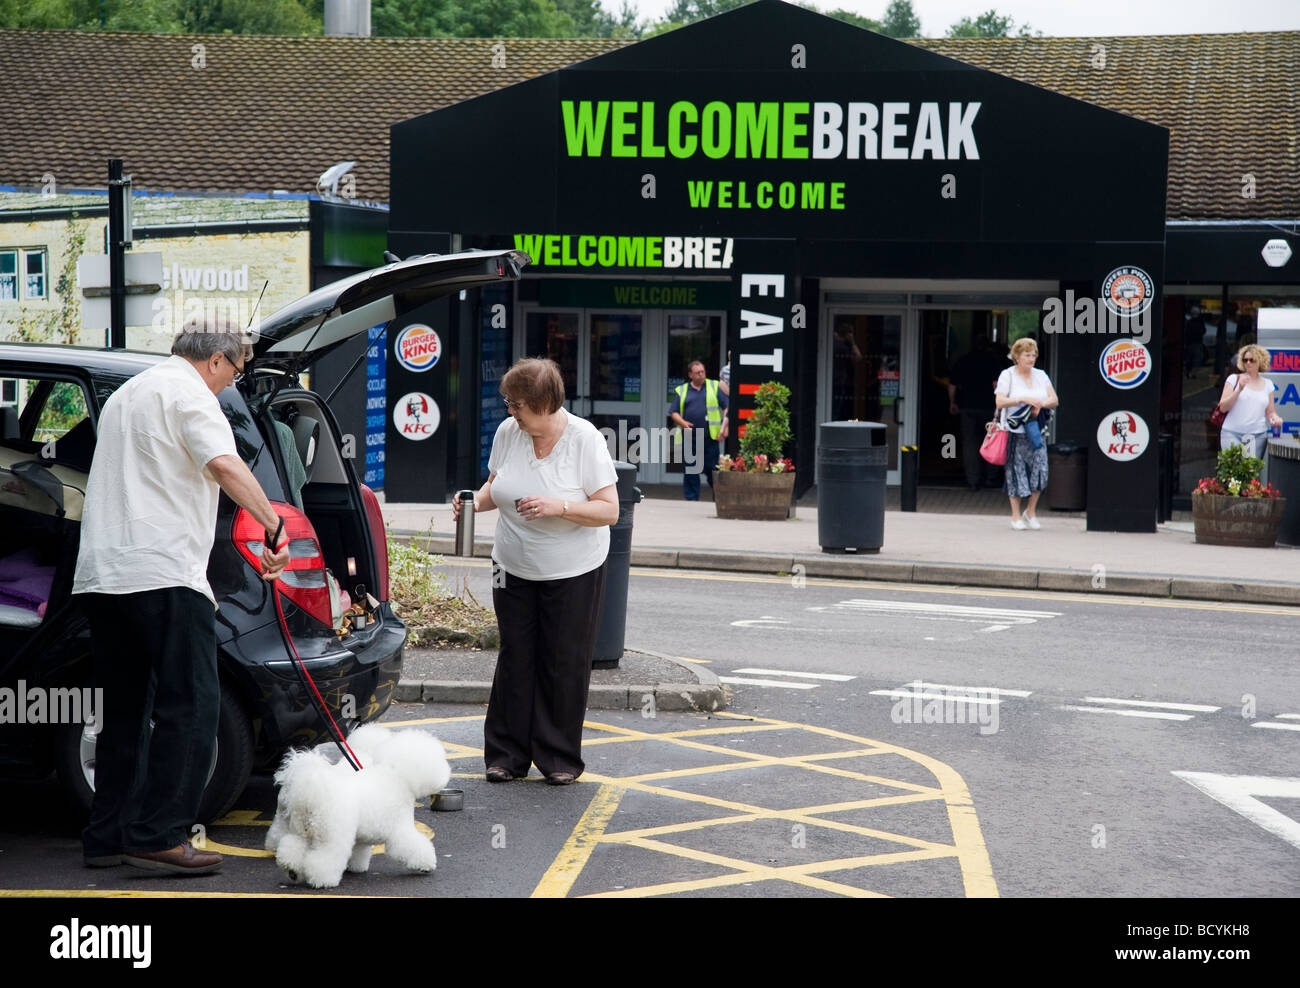 Welcome Break service station off the motorway Stock Photo